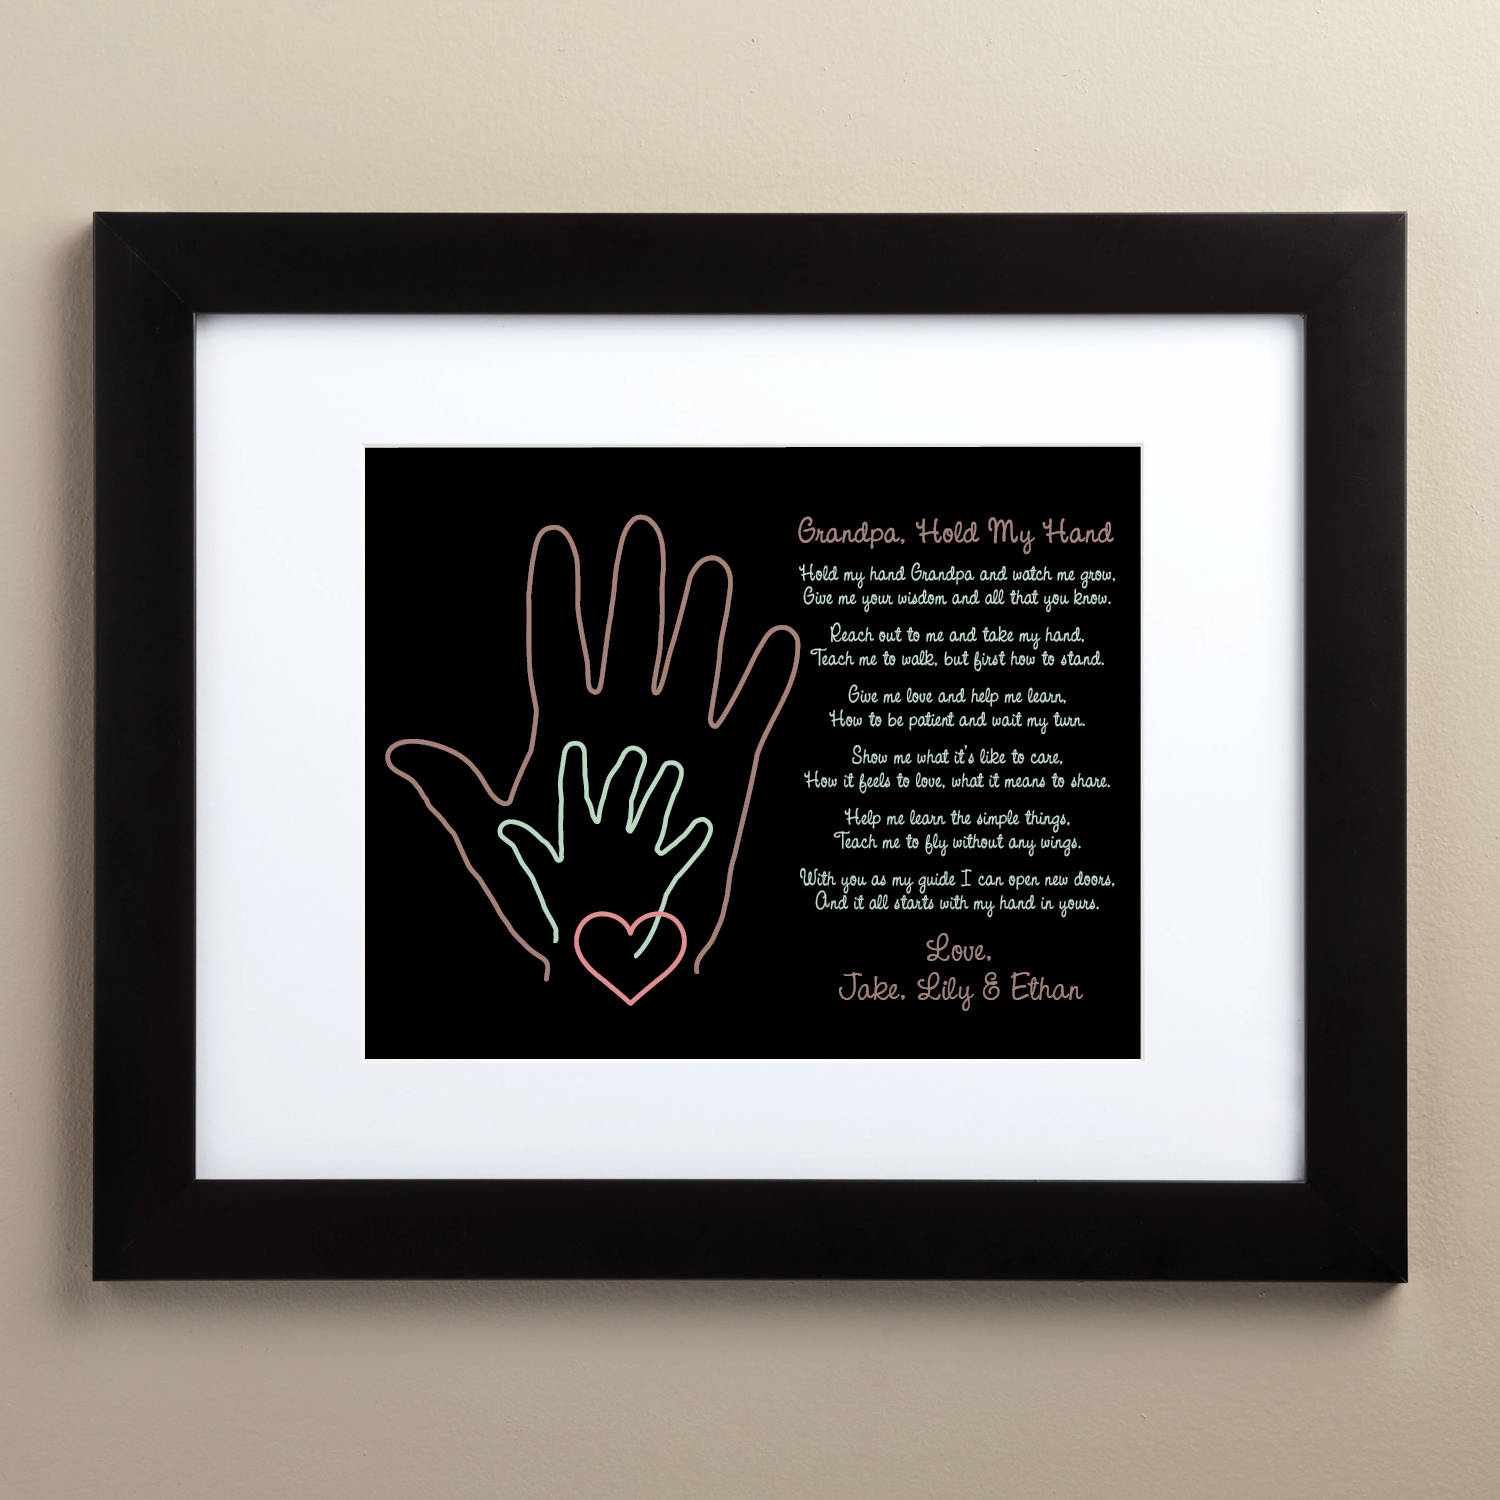 Personalized Grandpa Hold My Hand Framed Print